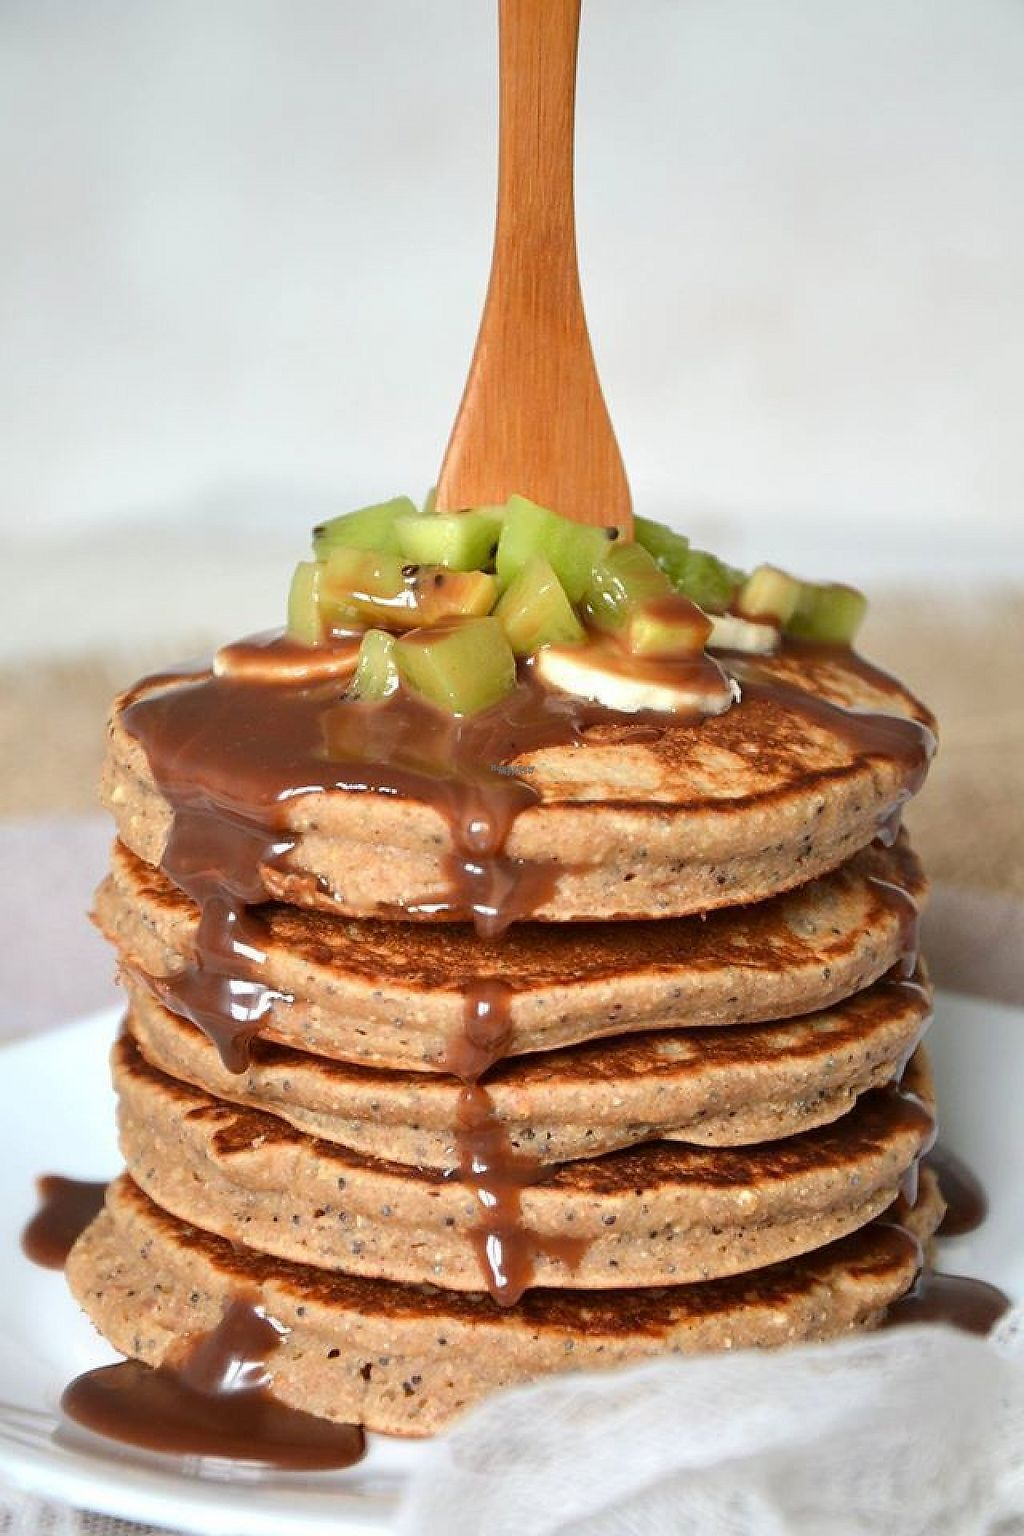 "Photo of La Vie Claire  by <a href=""/members/profile/community"">community</a> <br/>vegan pancakes  <br/> February 4, 2017  - <a href='/contact/abuse/image/68779/221821'>Report</a>"